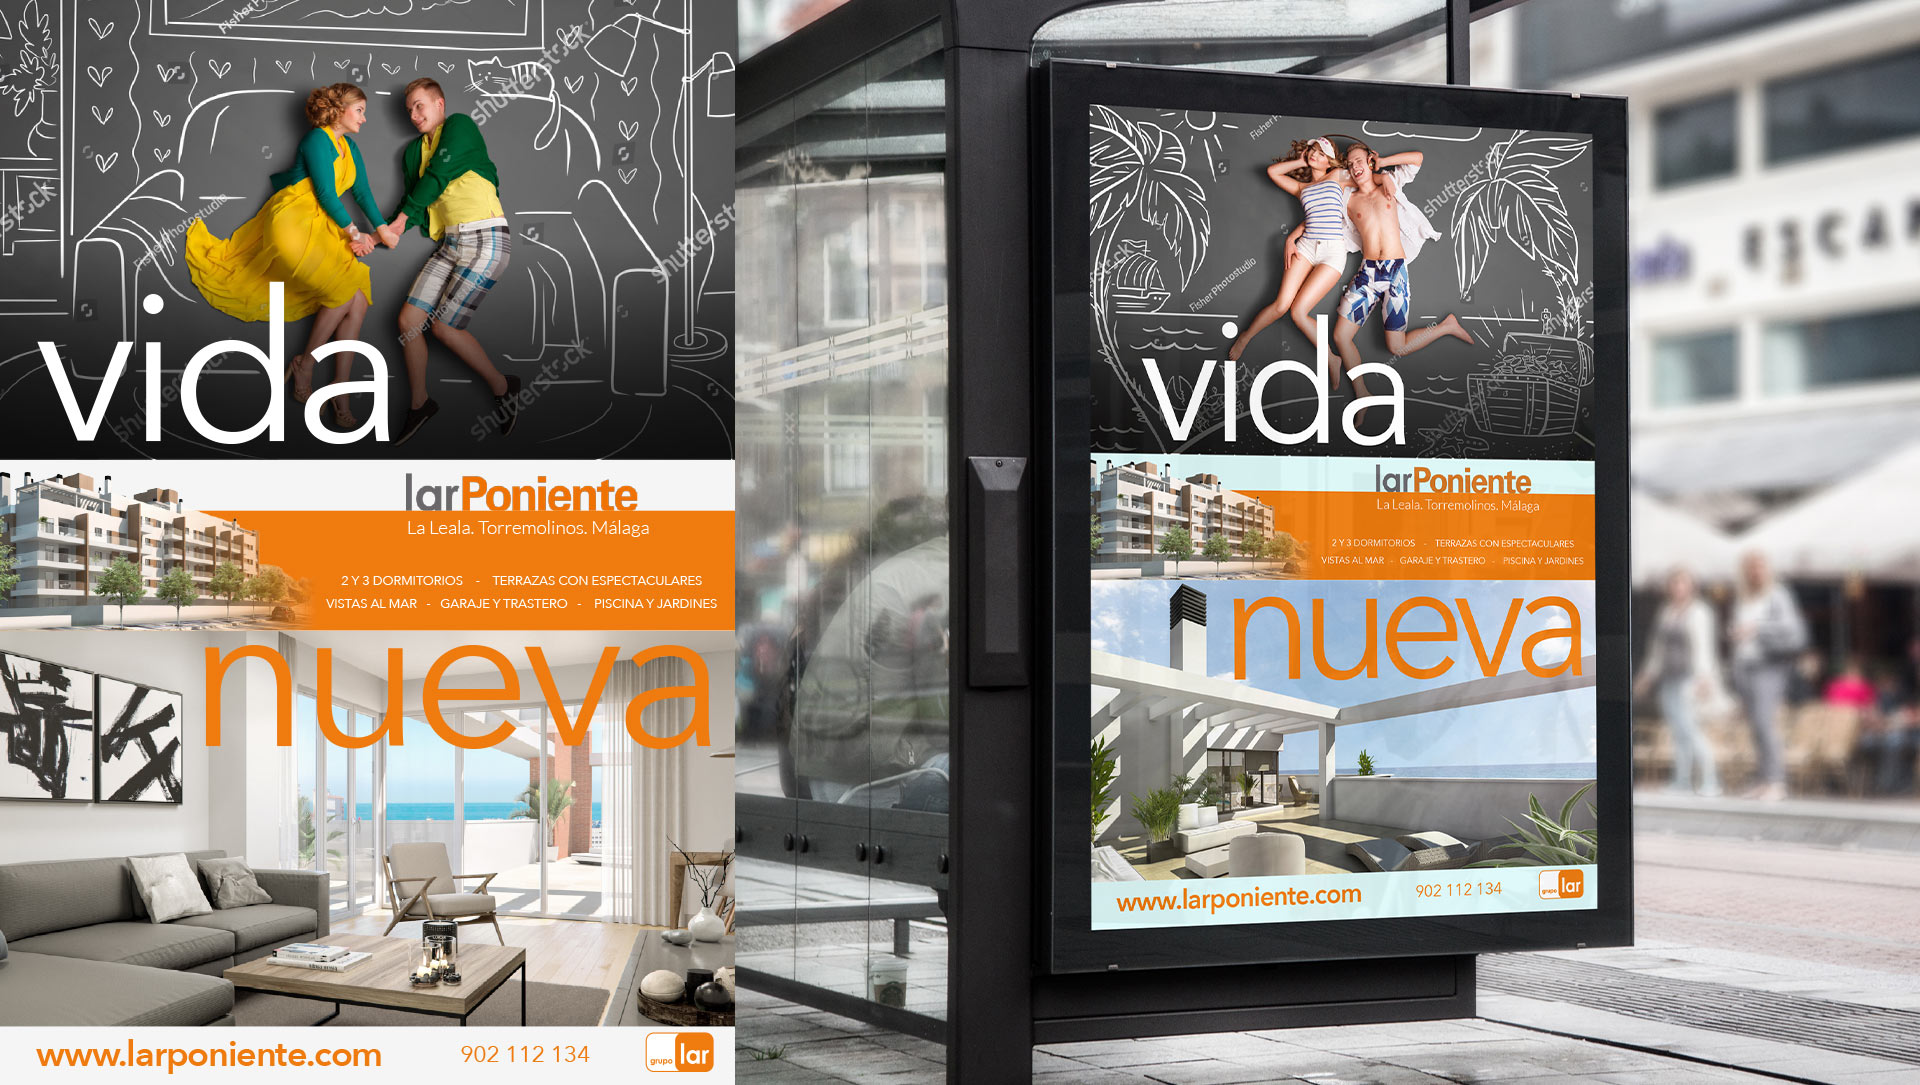 david_crespo_advertising_portfolio